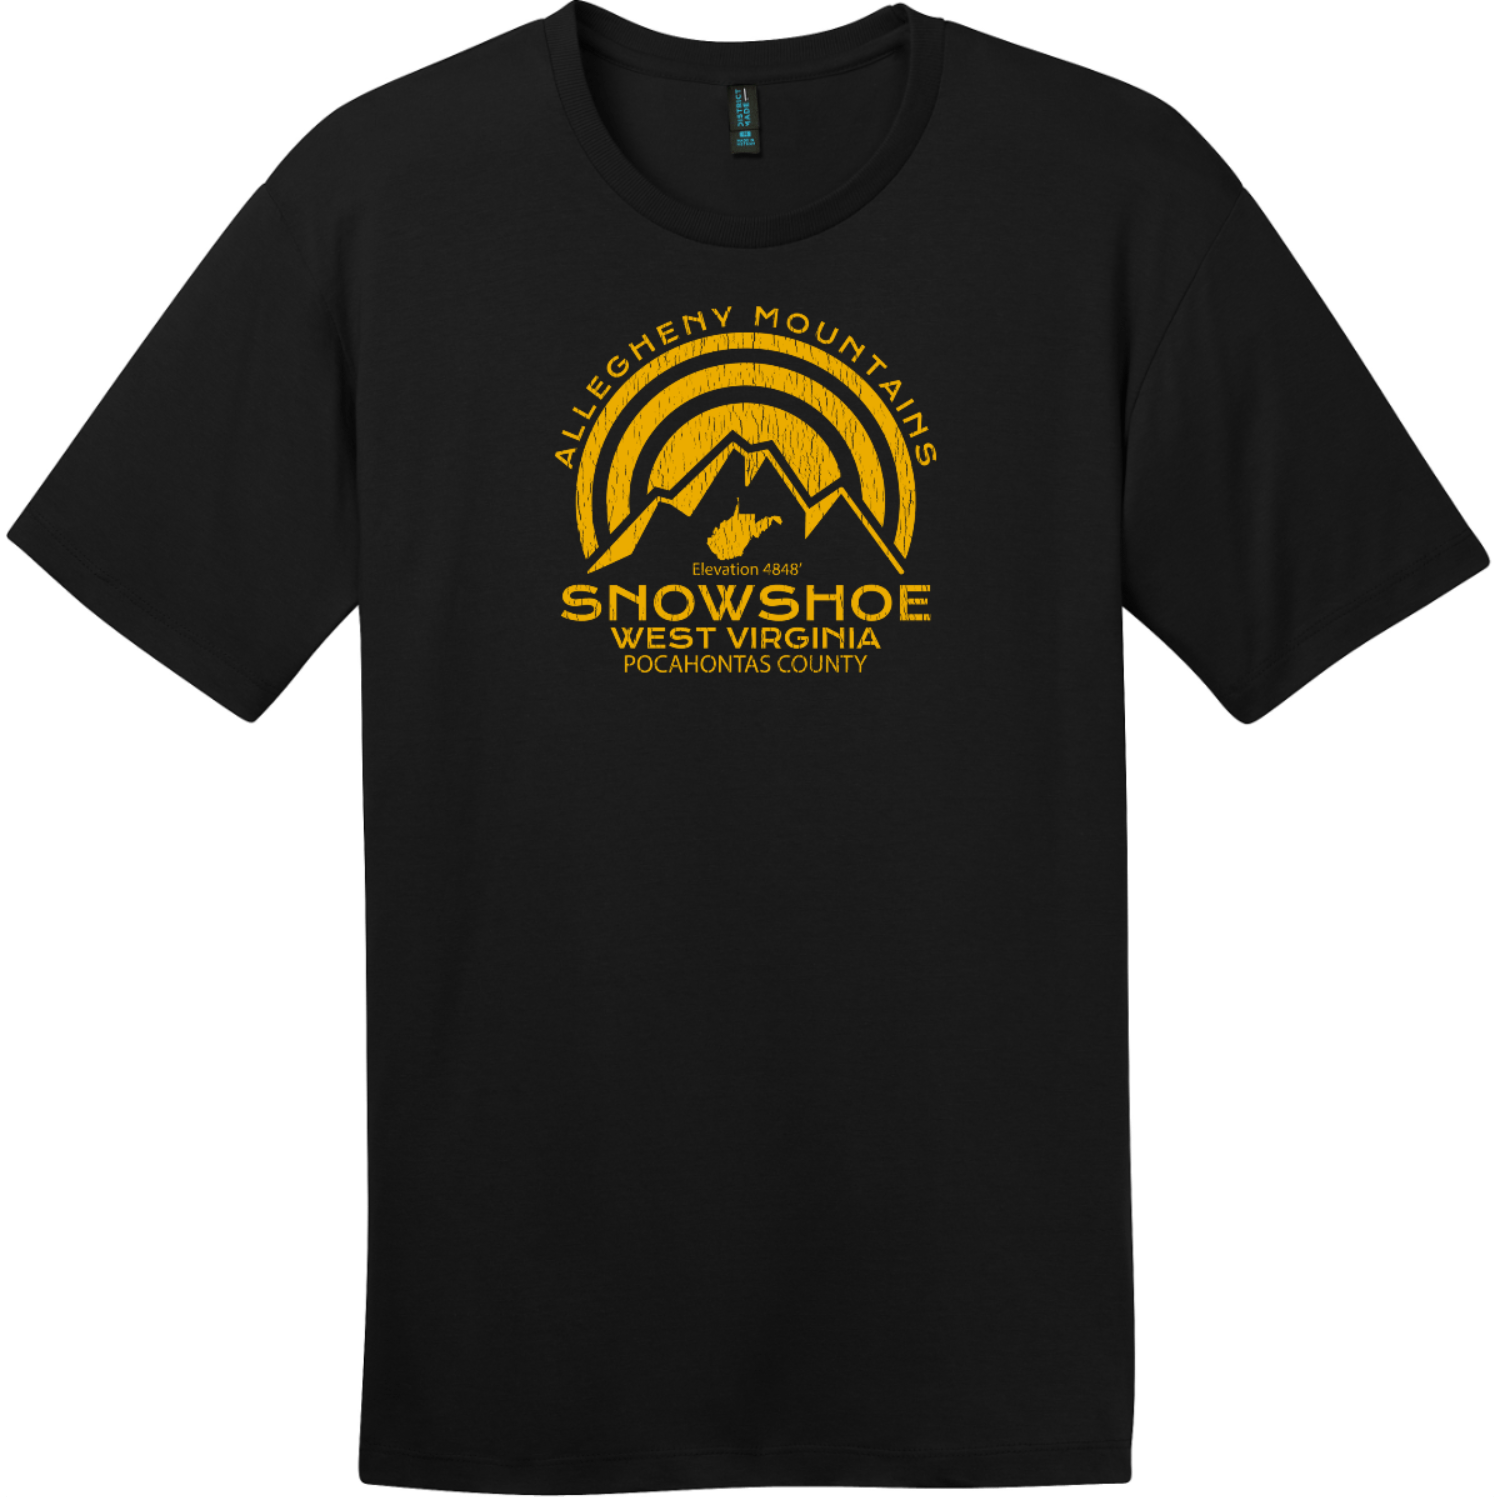 Snowshoe West Virginia Mountain T-Shirt Jet Black District Perfect Weight Tee DT104